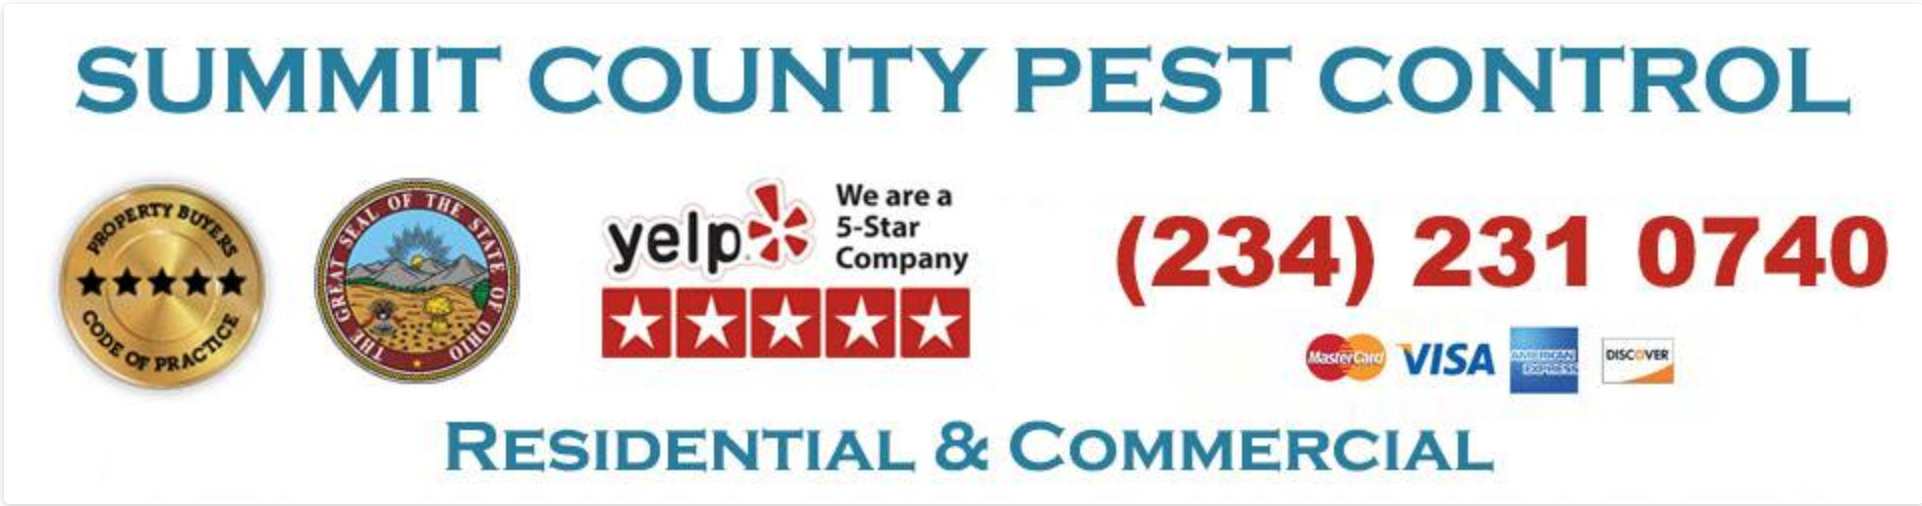 Summit County Pest Control Launches a Website Offering Pest Control Services Across Summit County, Ohio